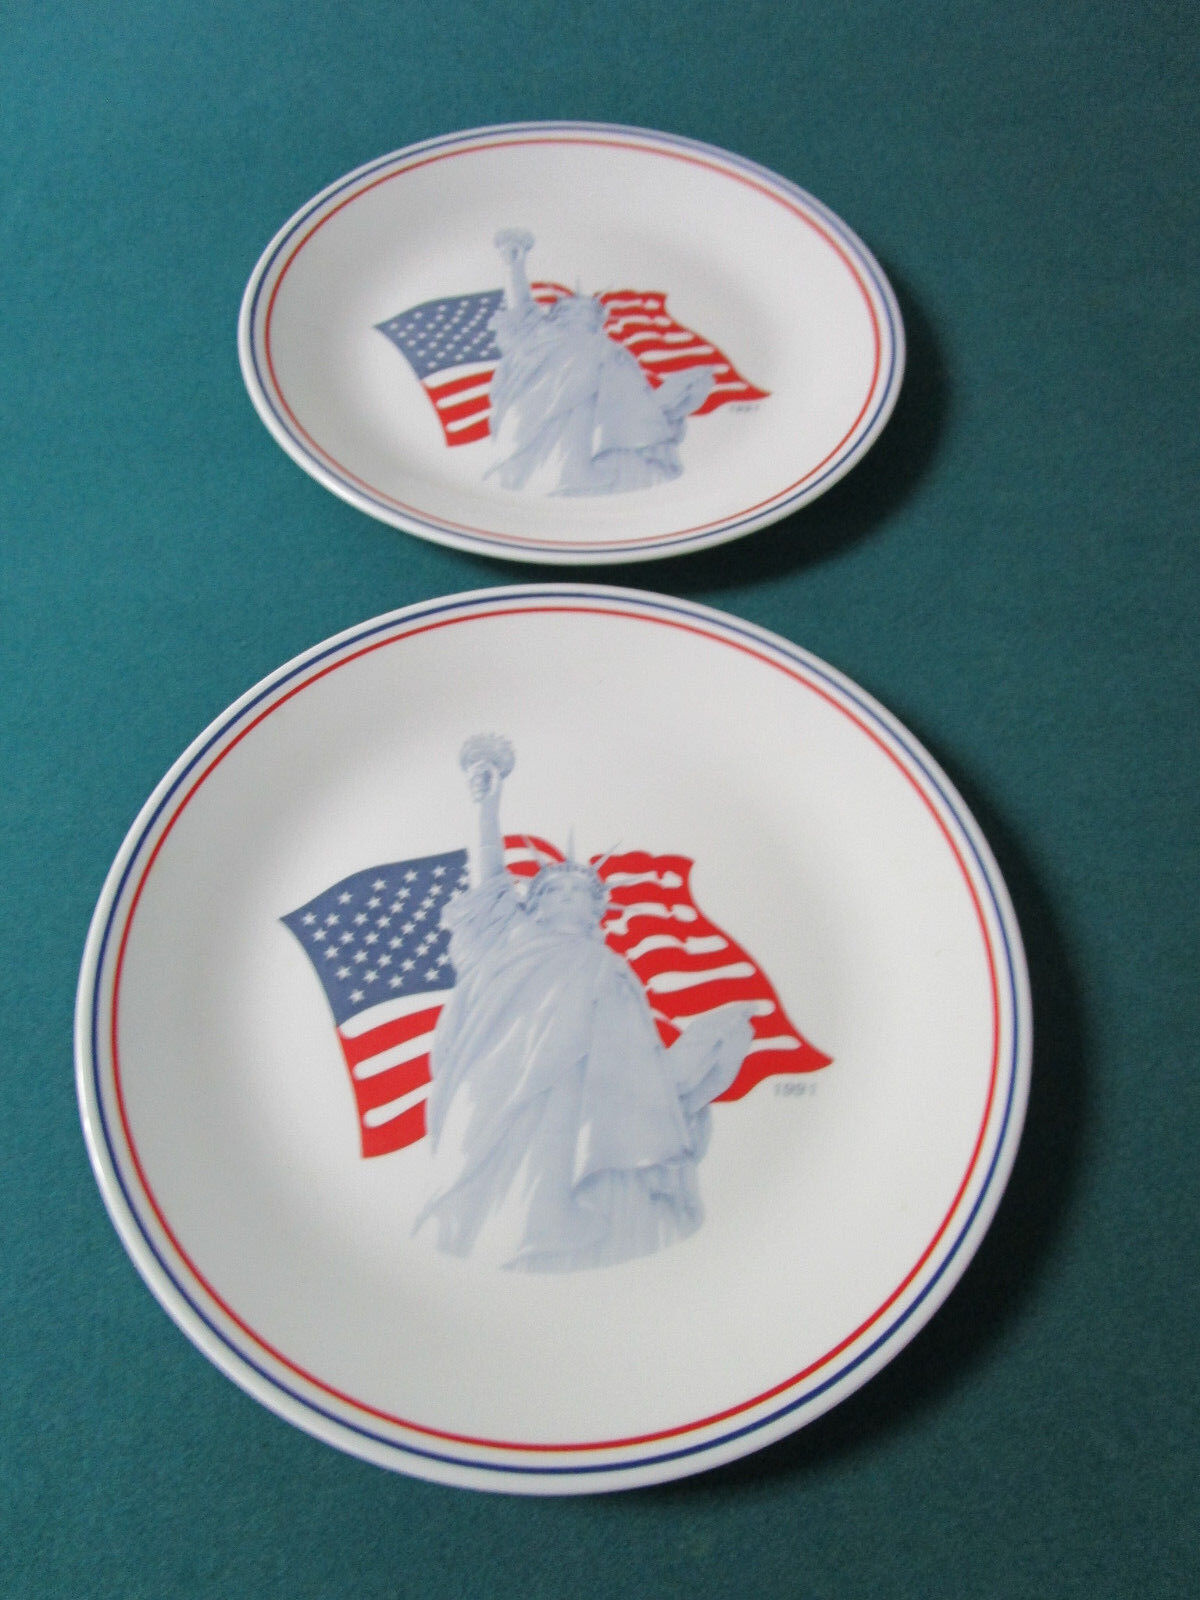 Vintage 1991 Statue of Liberty Corelle 2 Plates by Corning 10.25